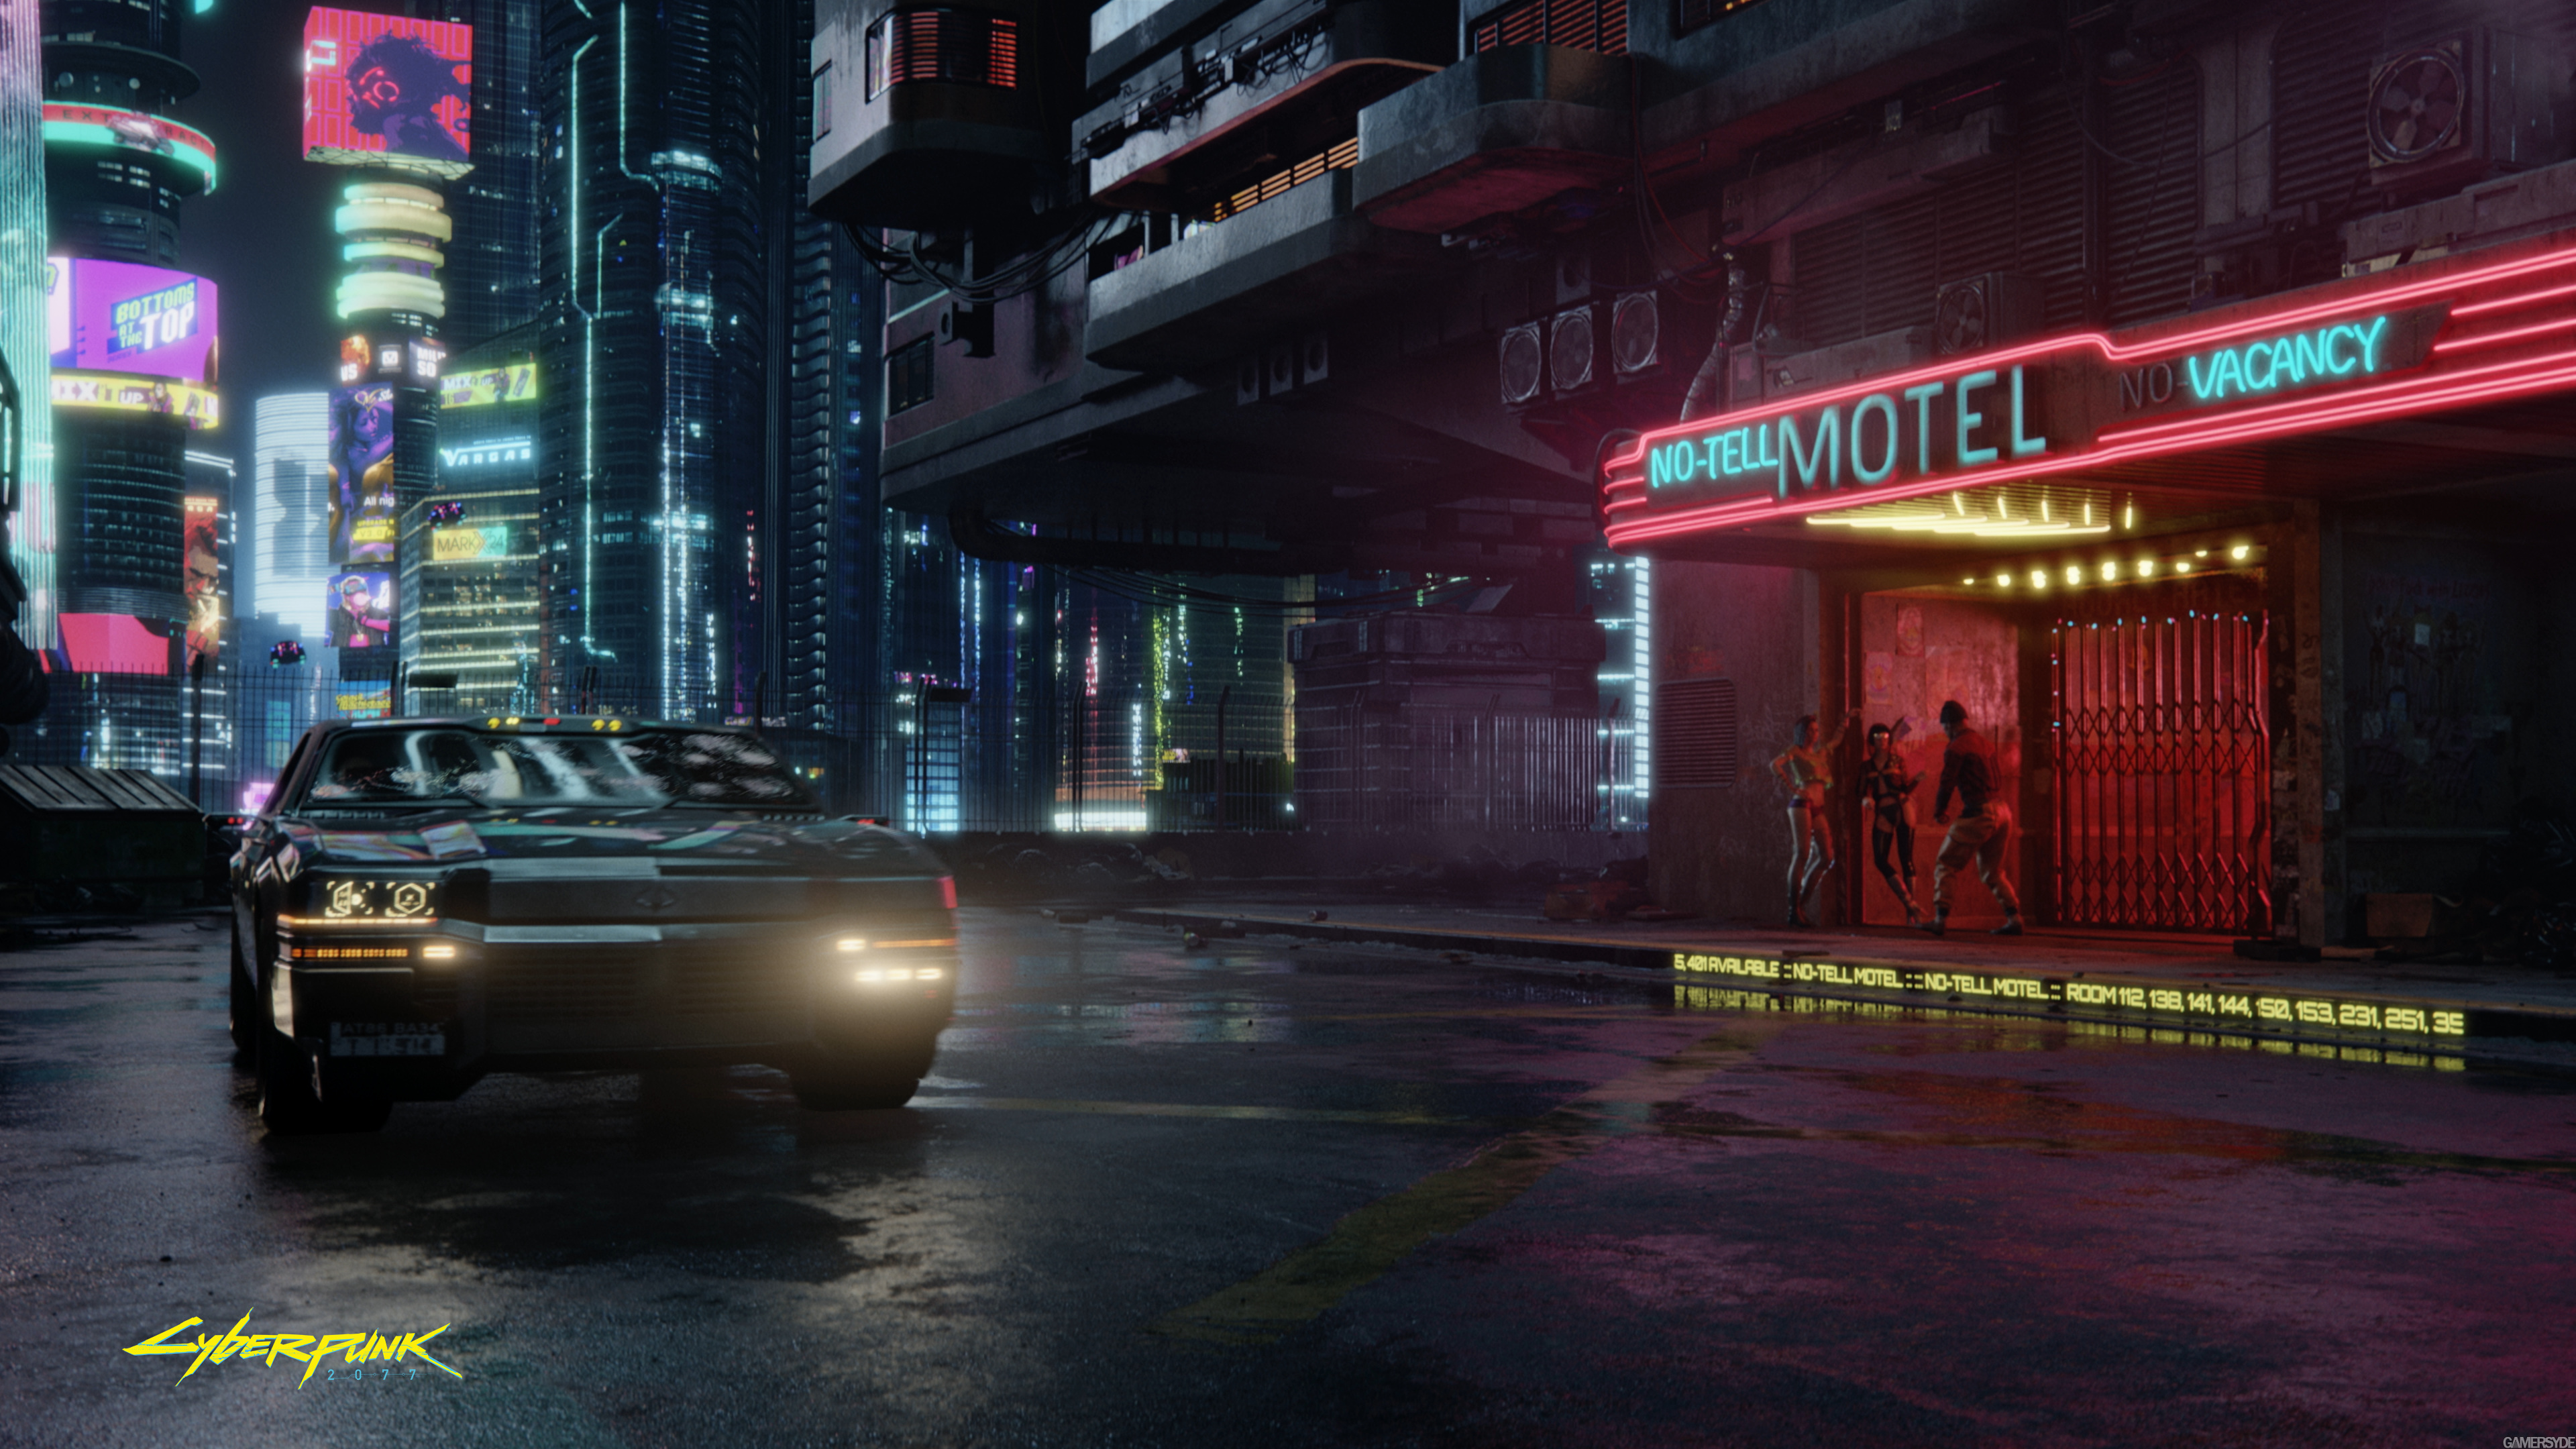 Cyberpunk 2077 4k Ultra Hd Wallpaper Background Image 3840x2160 Id 1022113 Wallpaper Abyss